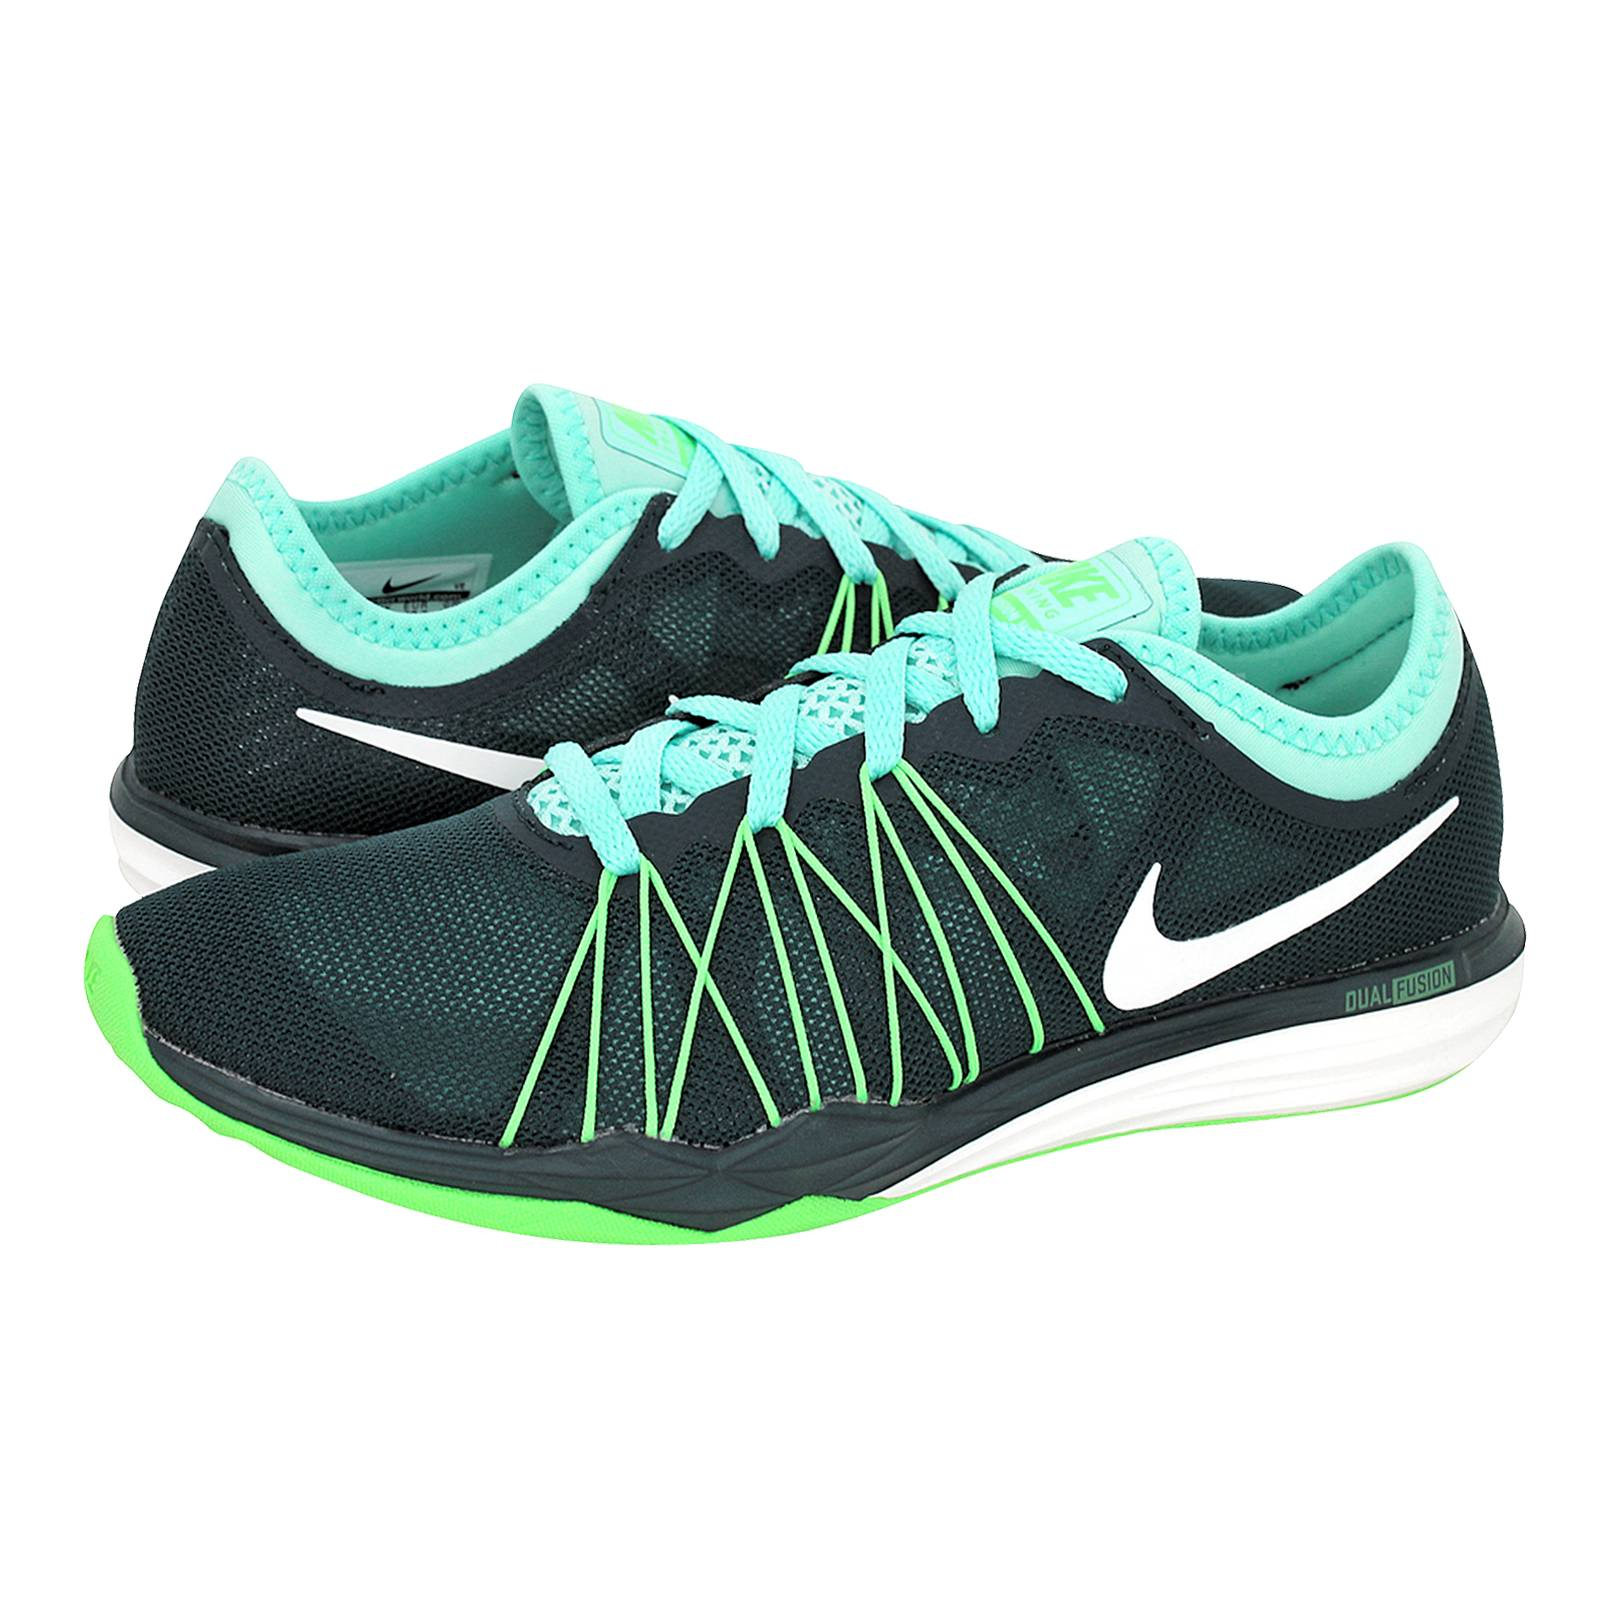 Unirse FALSO Telégrafo  Dual Fusion TR Hit - Nike Women's athletic shoes made of fabric - Gianna  Kazakou Online